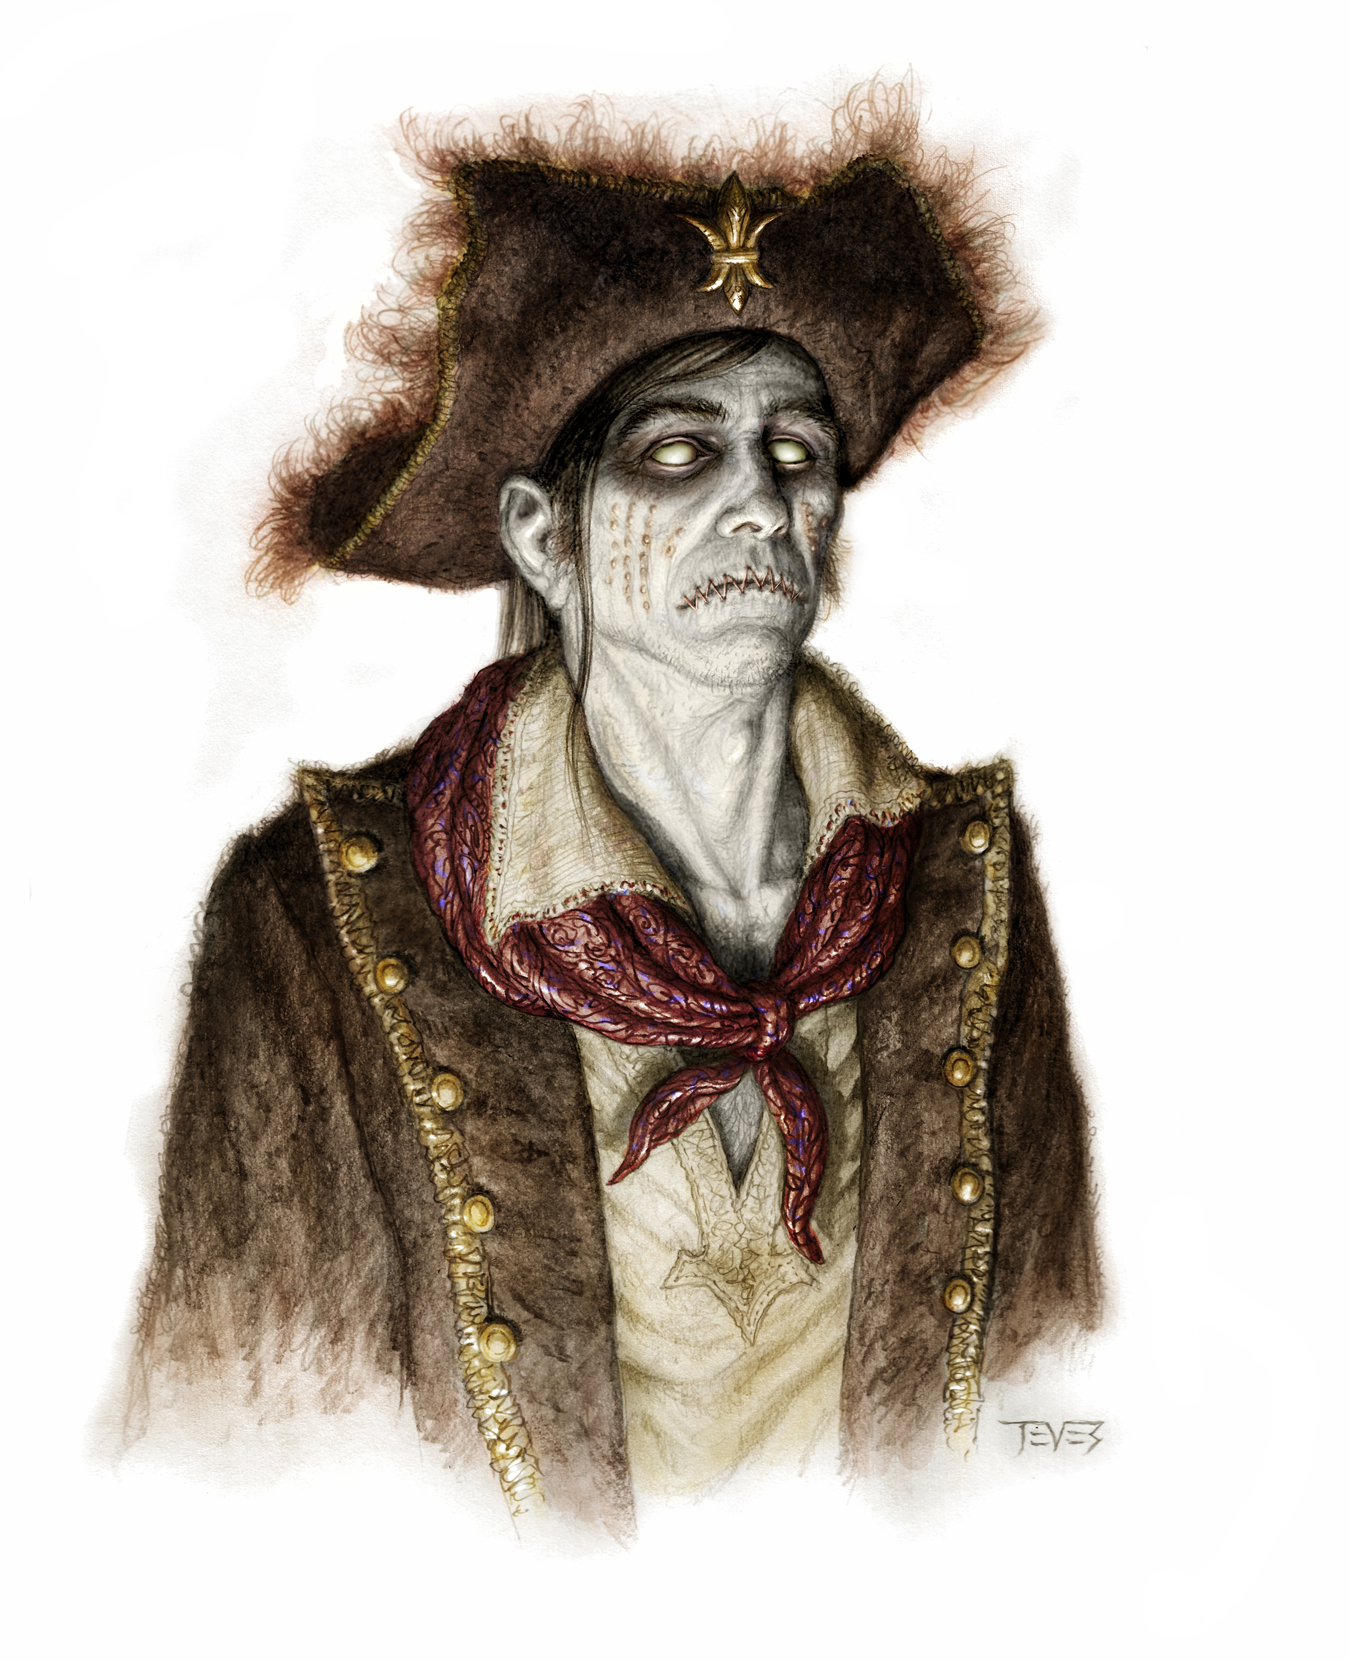 http://collider.com/wp-content/uploads/pirates-of-the-caribbean-on-stranger-tides-concept-art-zombie-01.jpg